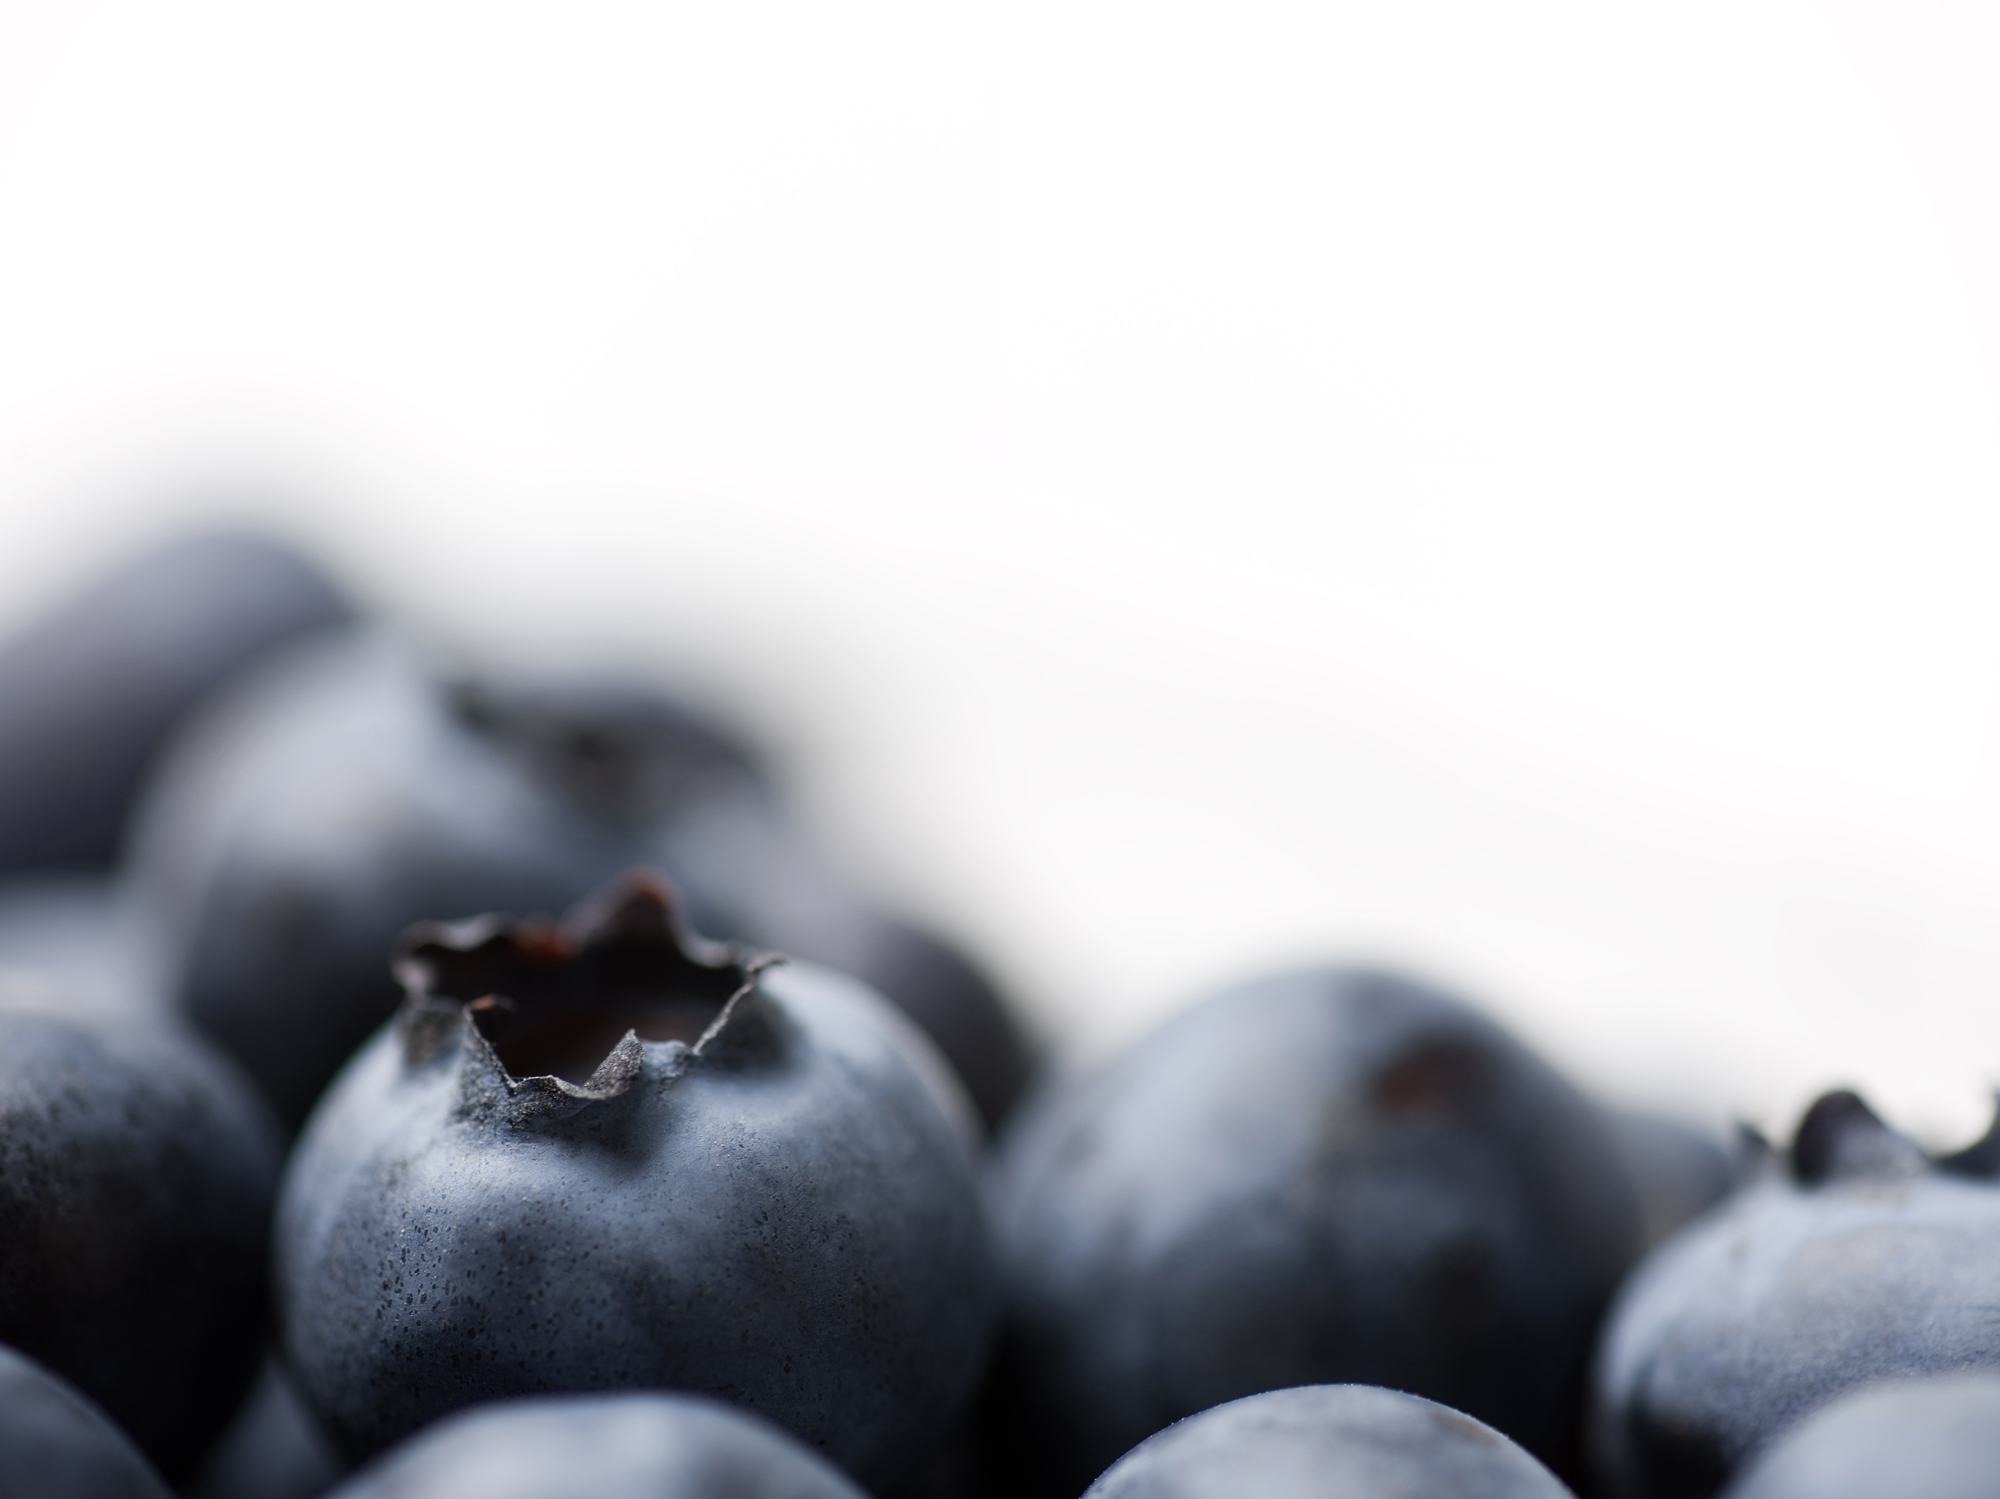 blueberries-studio-photo.jpg